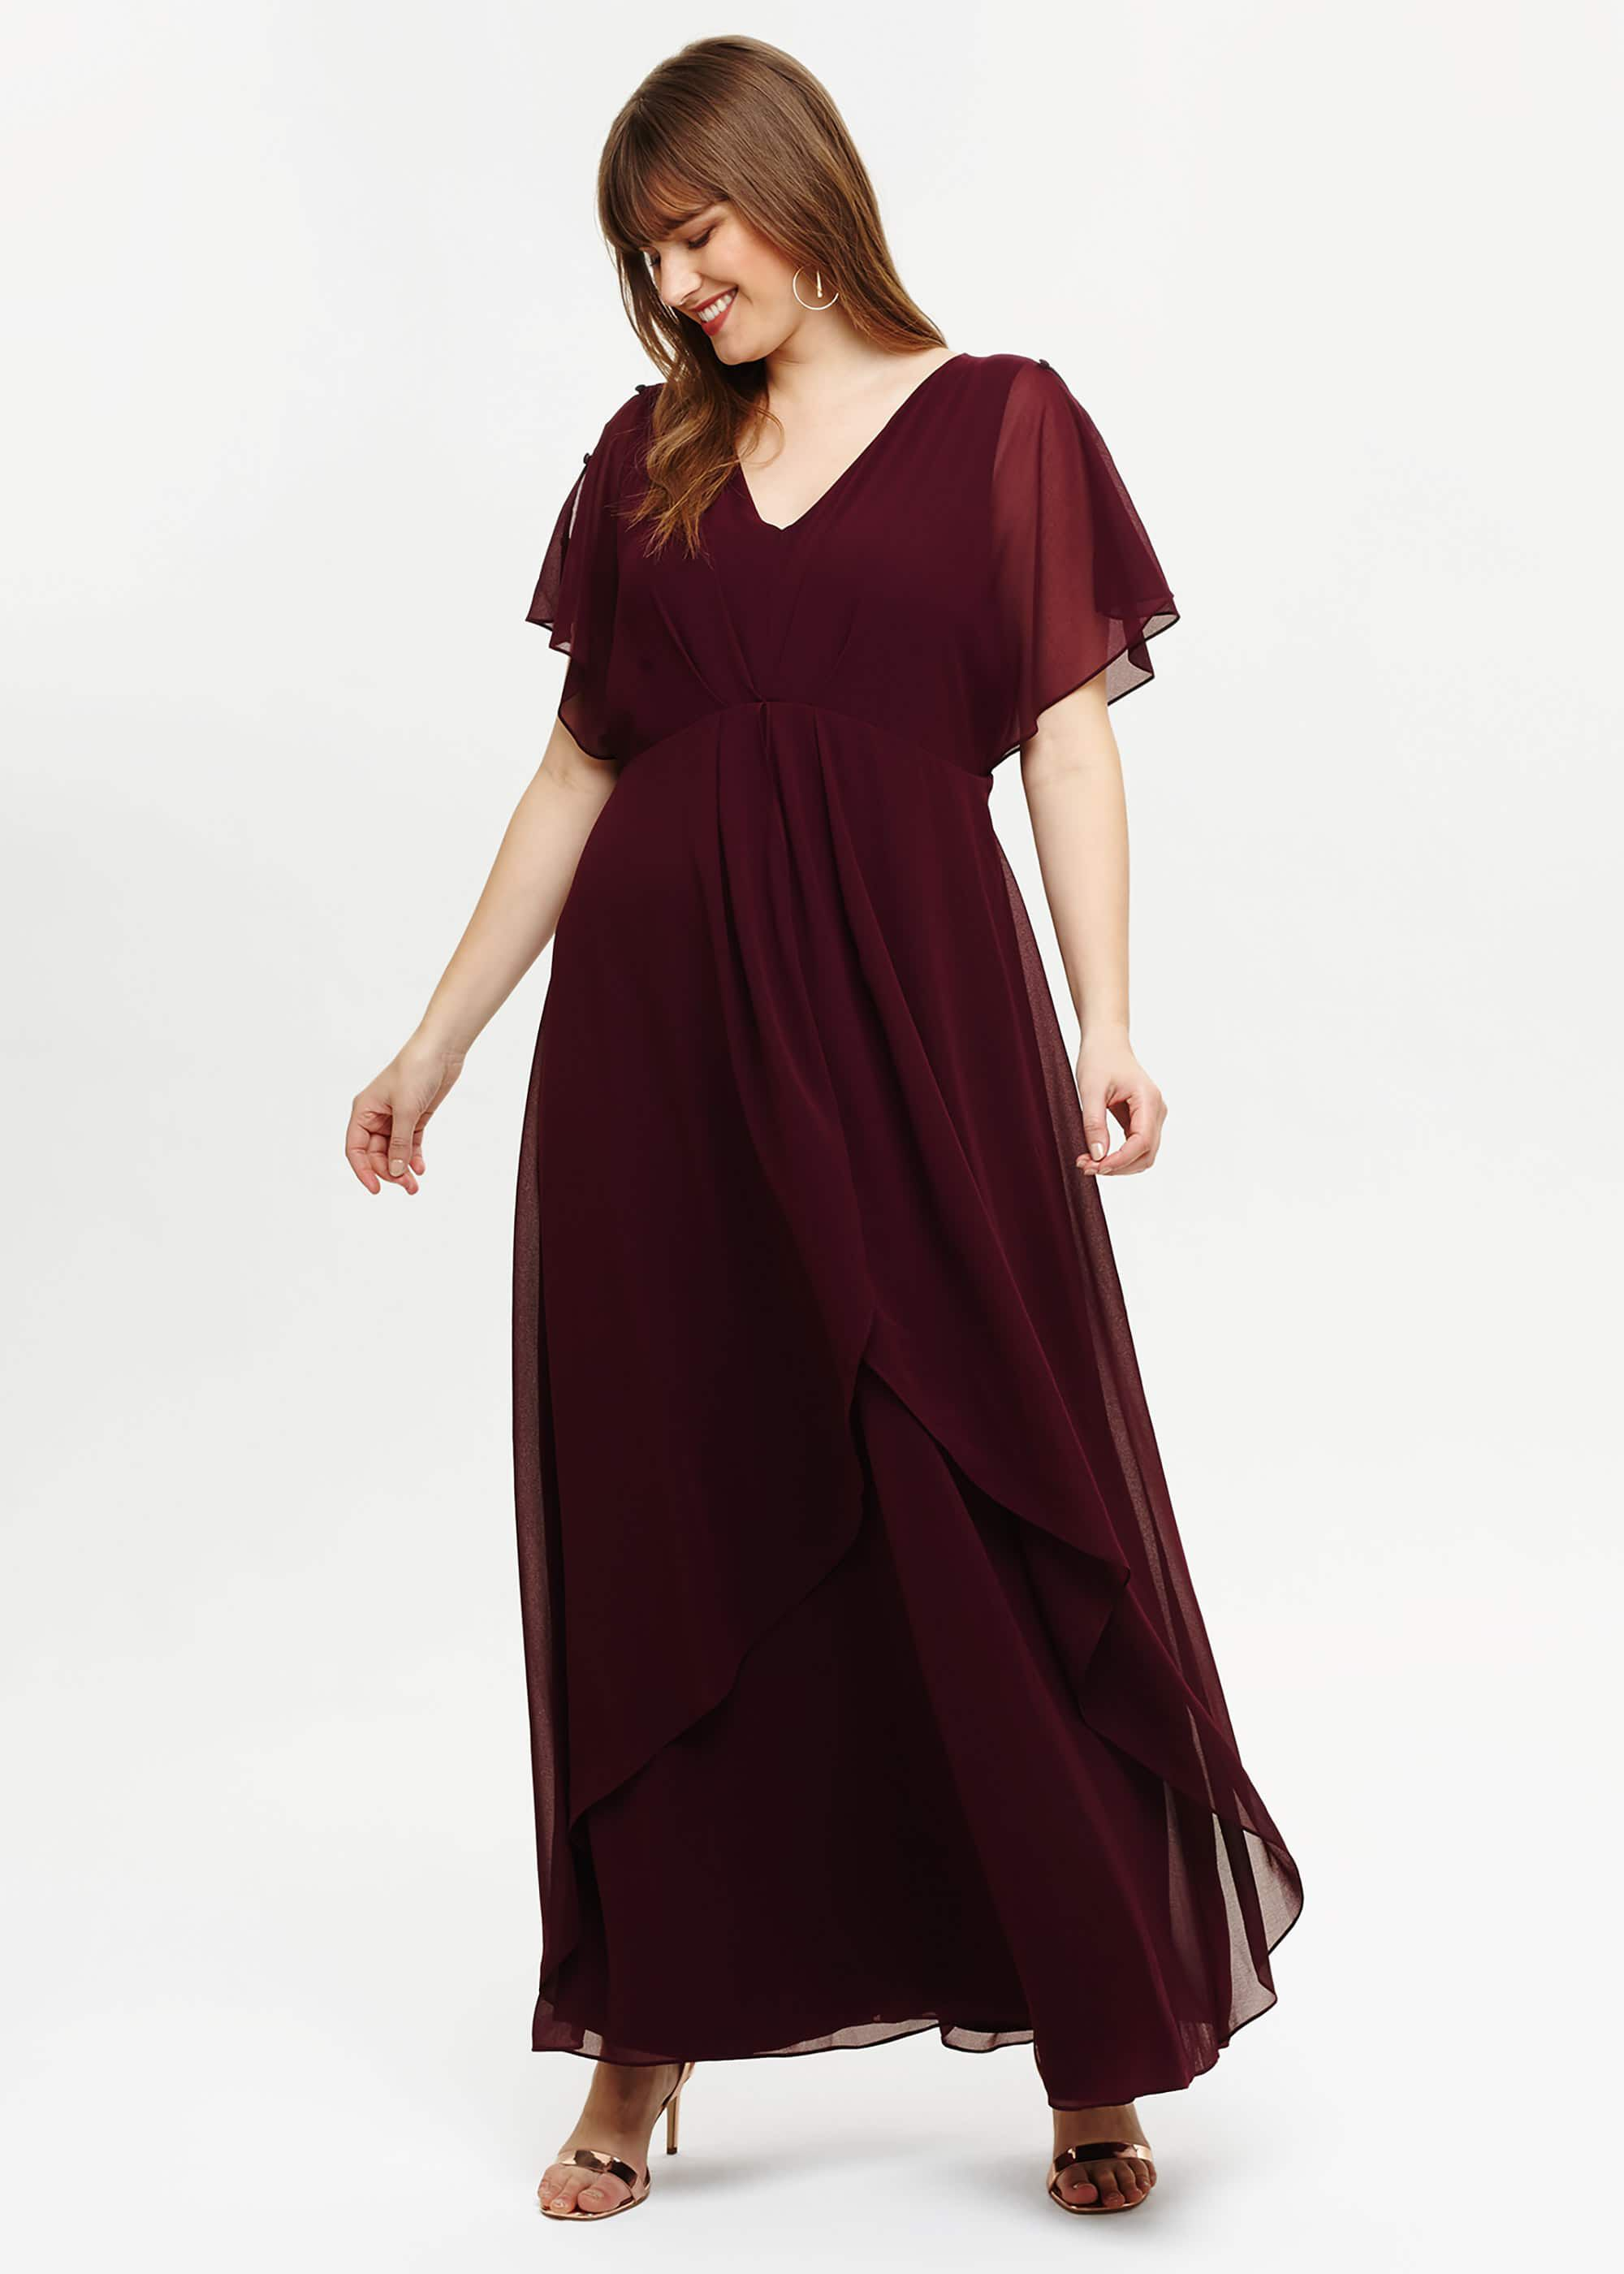 Nova Bridesmaid Maxi Dress | Phase Eight